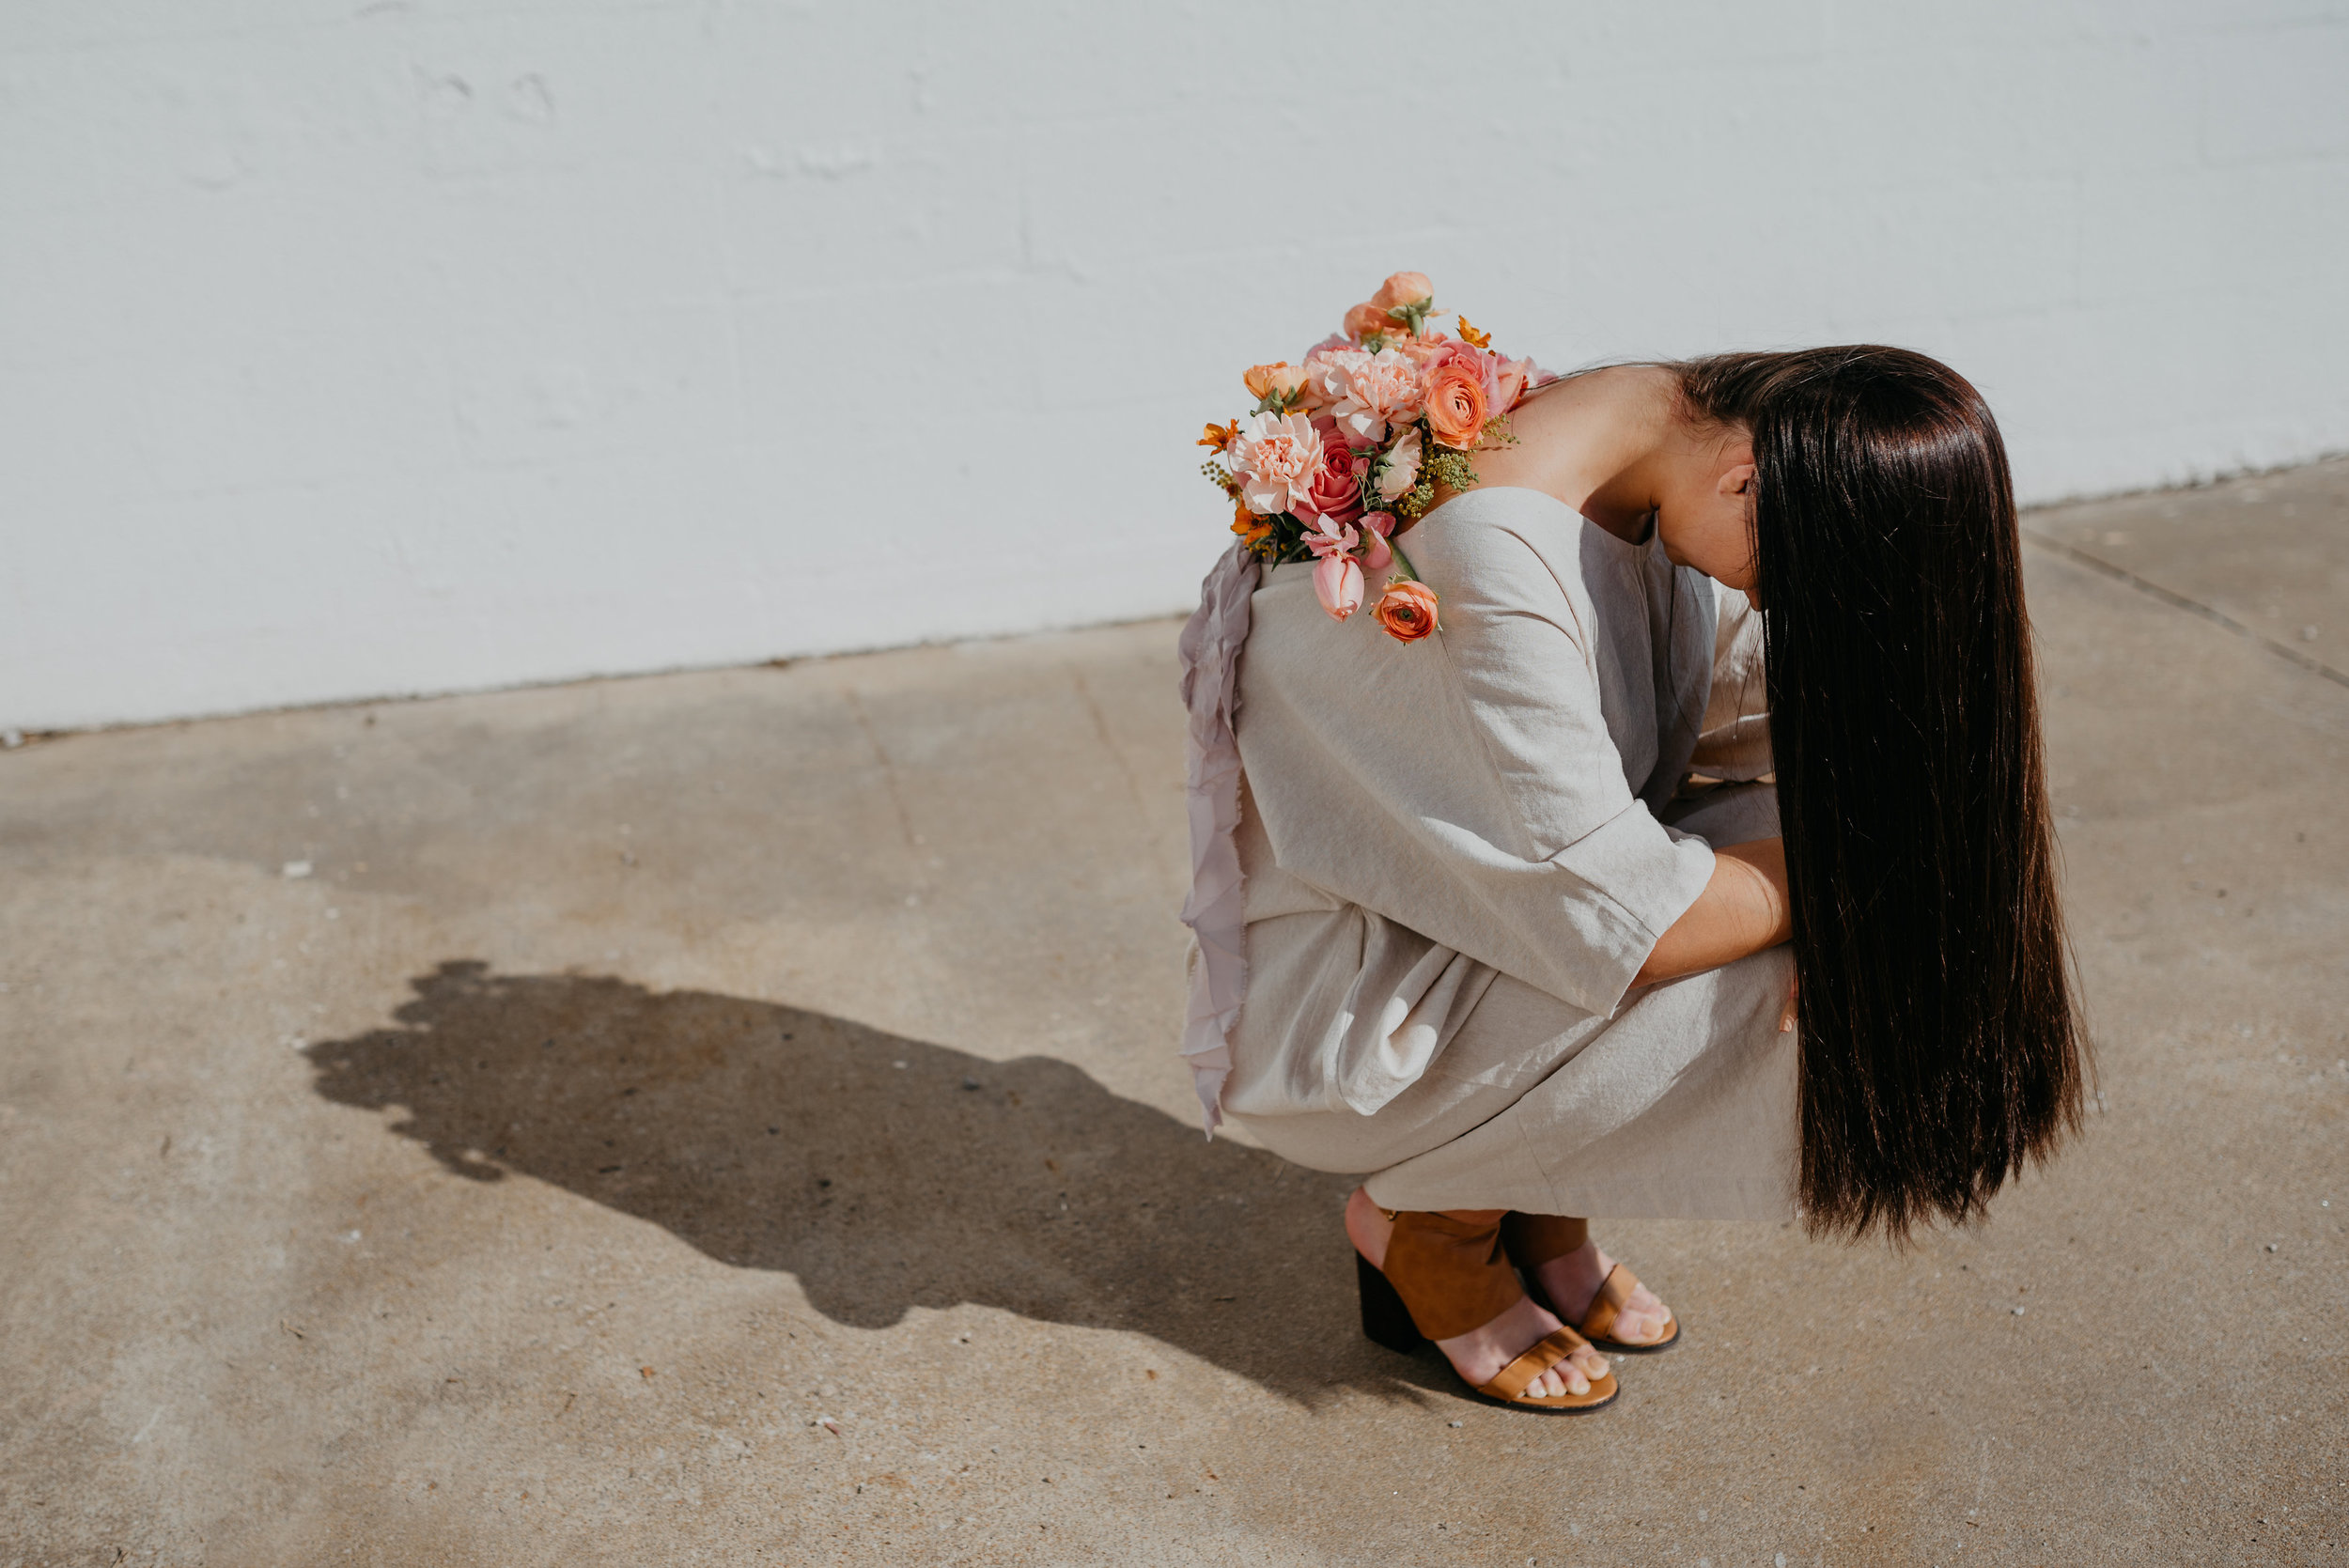 100% Linen Daybreak Kaftan by Nelly Gavrilov of Forma, Styled by Nicole Gavrilov of Mindful Makers Co, Photographed by Wendy Bobarikin, Modeled by Kennedy Marinelli, Florals by Anthousai of Tulsa, Oklahoma.